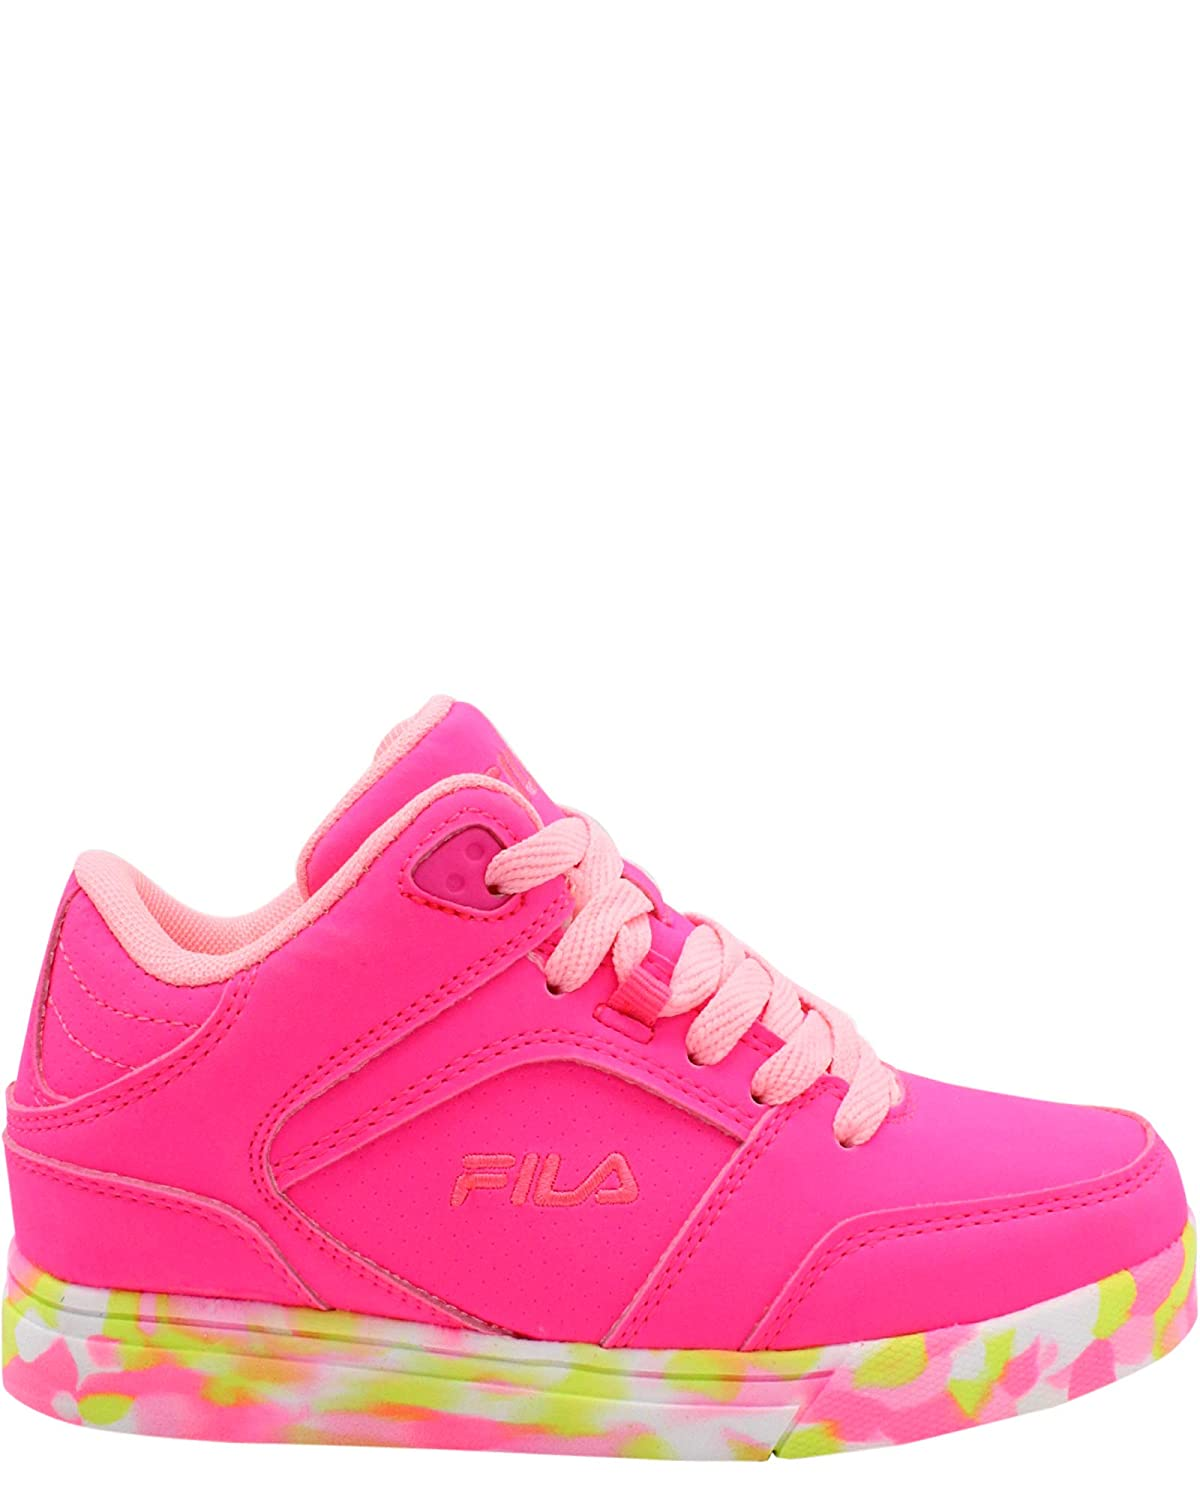 Little Kid ,Pink,1.5 Fila Kids Falina Mashup Sneaker